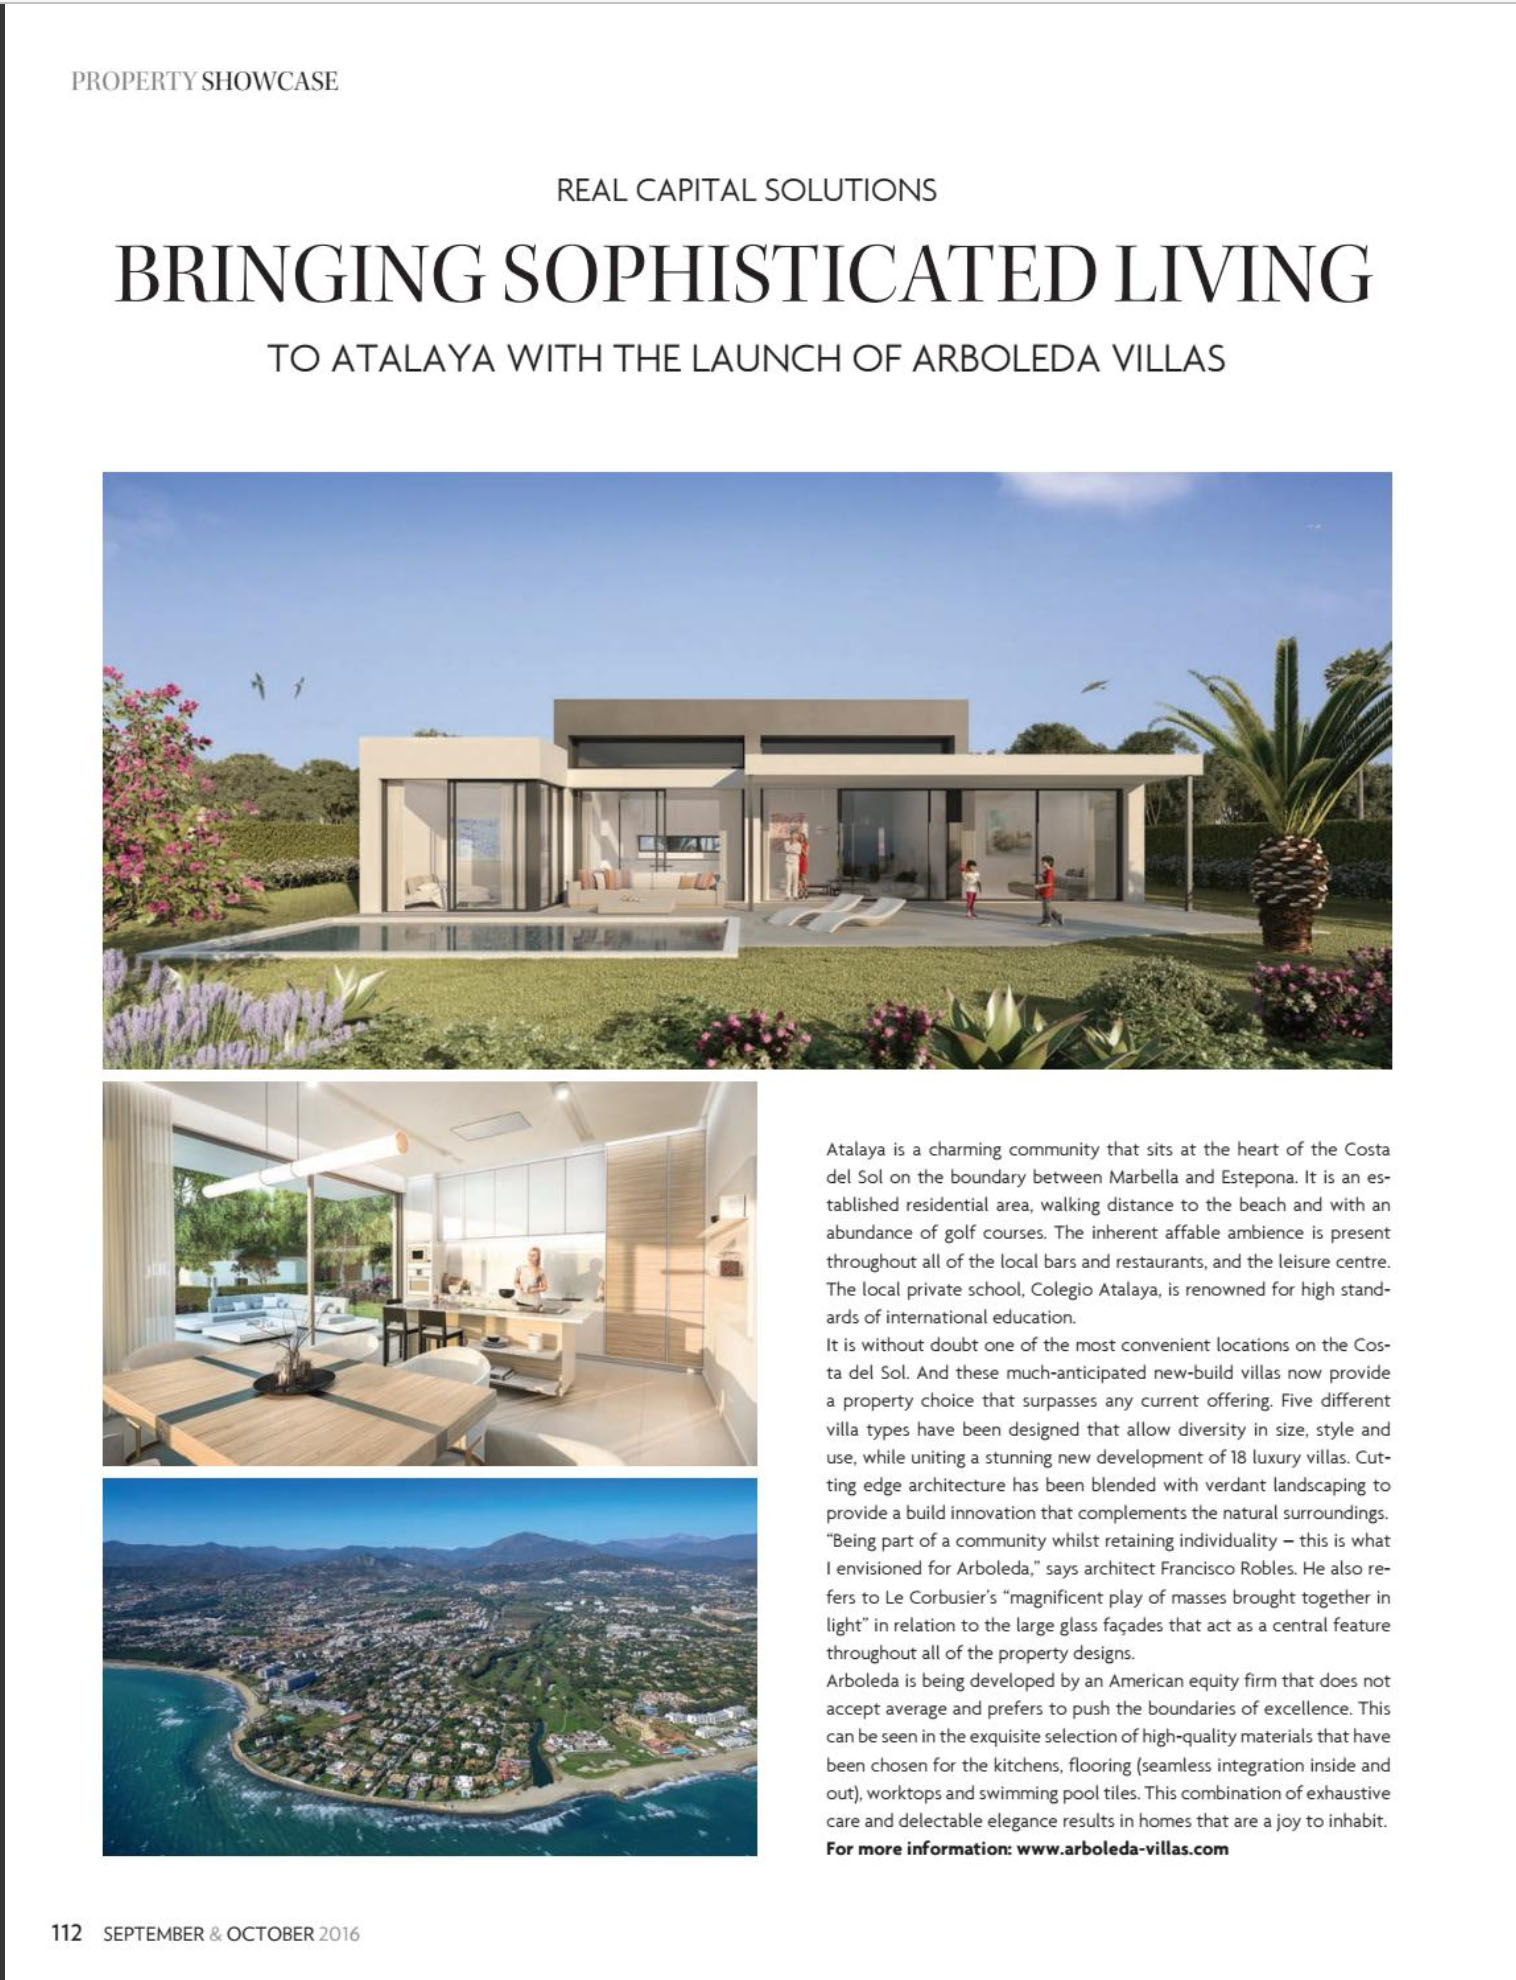 Arboleda by Real Capital Solutions as featured in Home & Lifestyle magazine